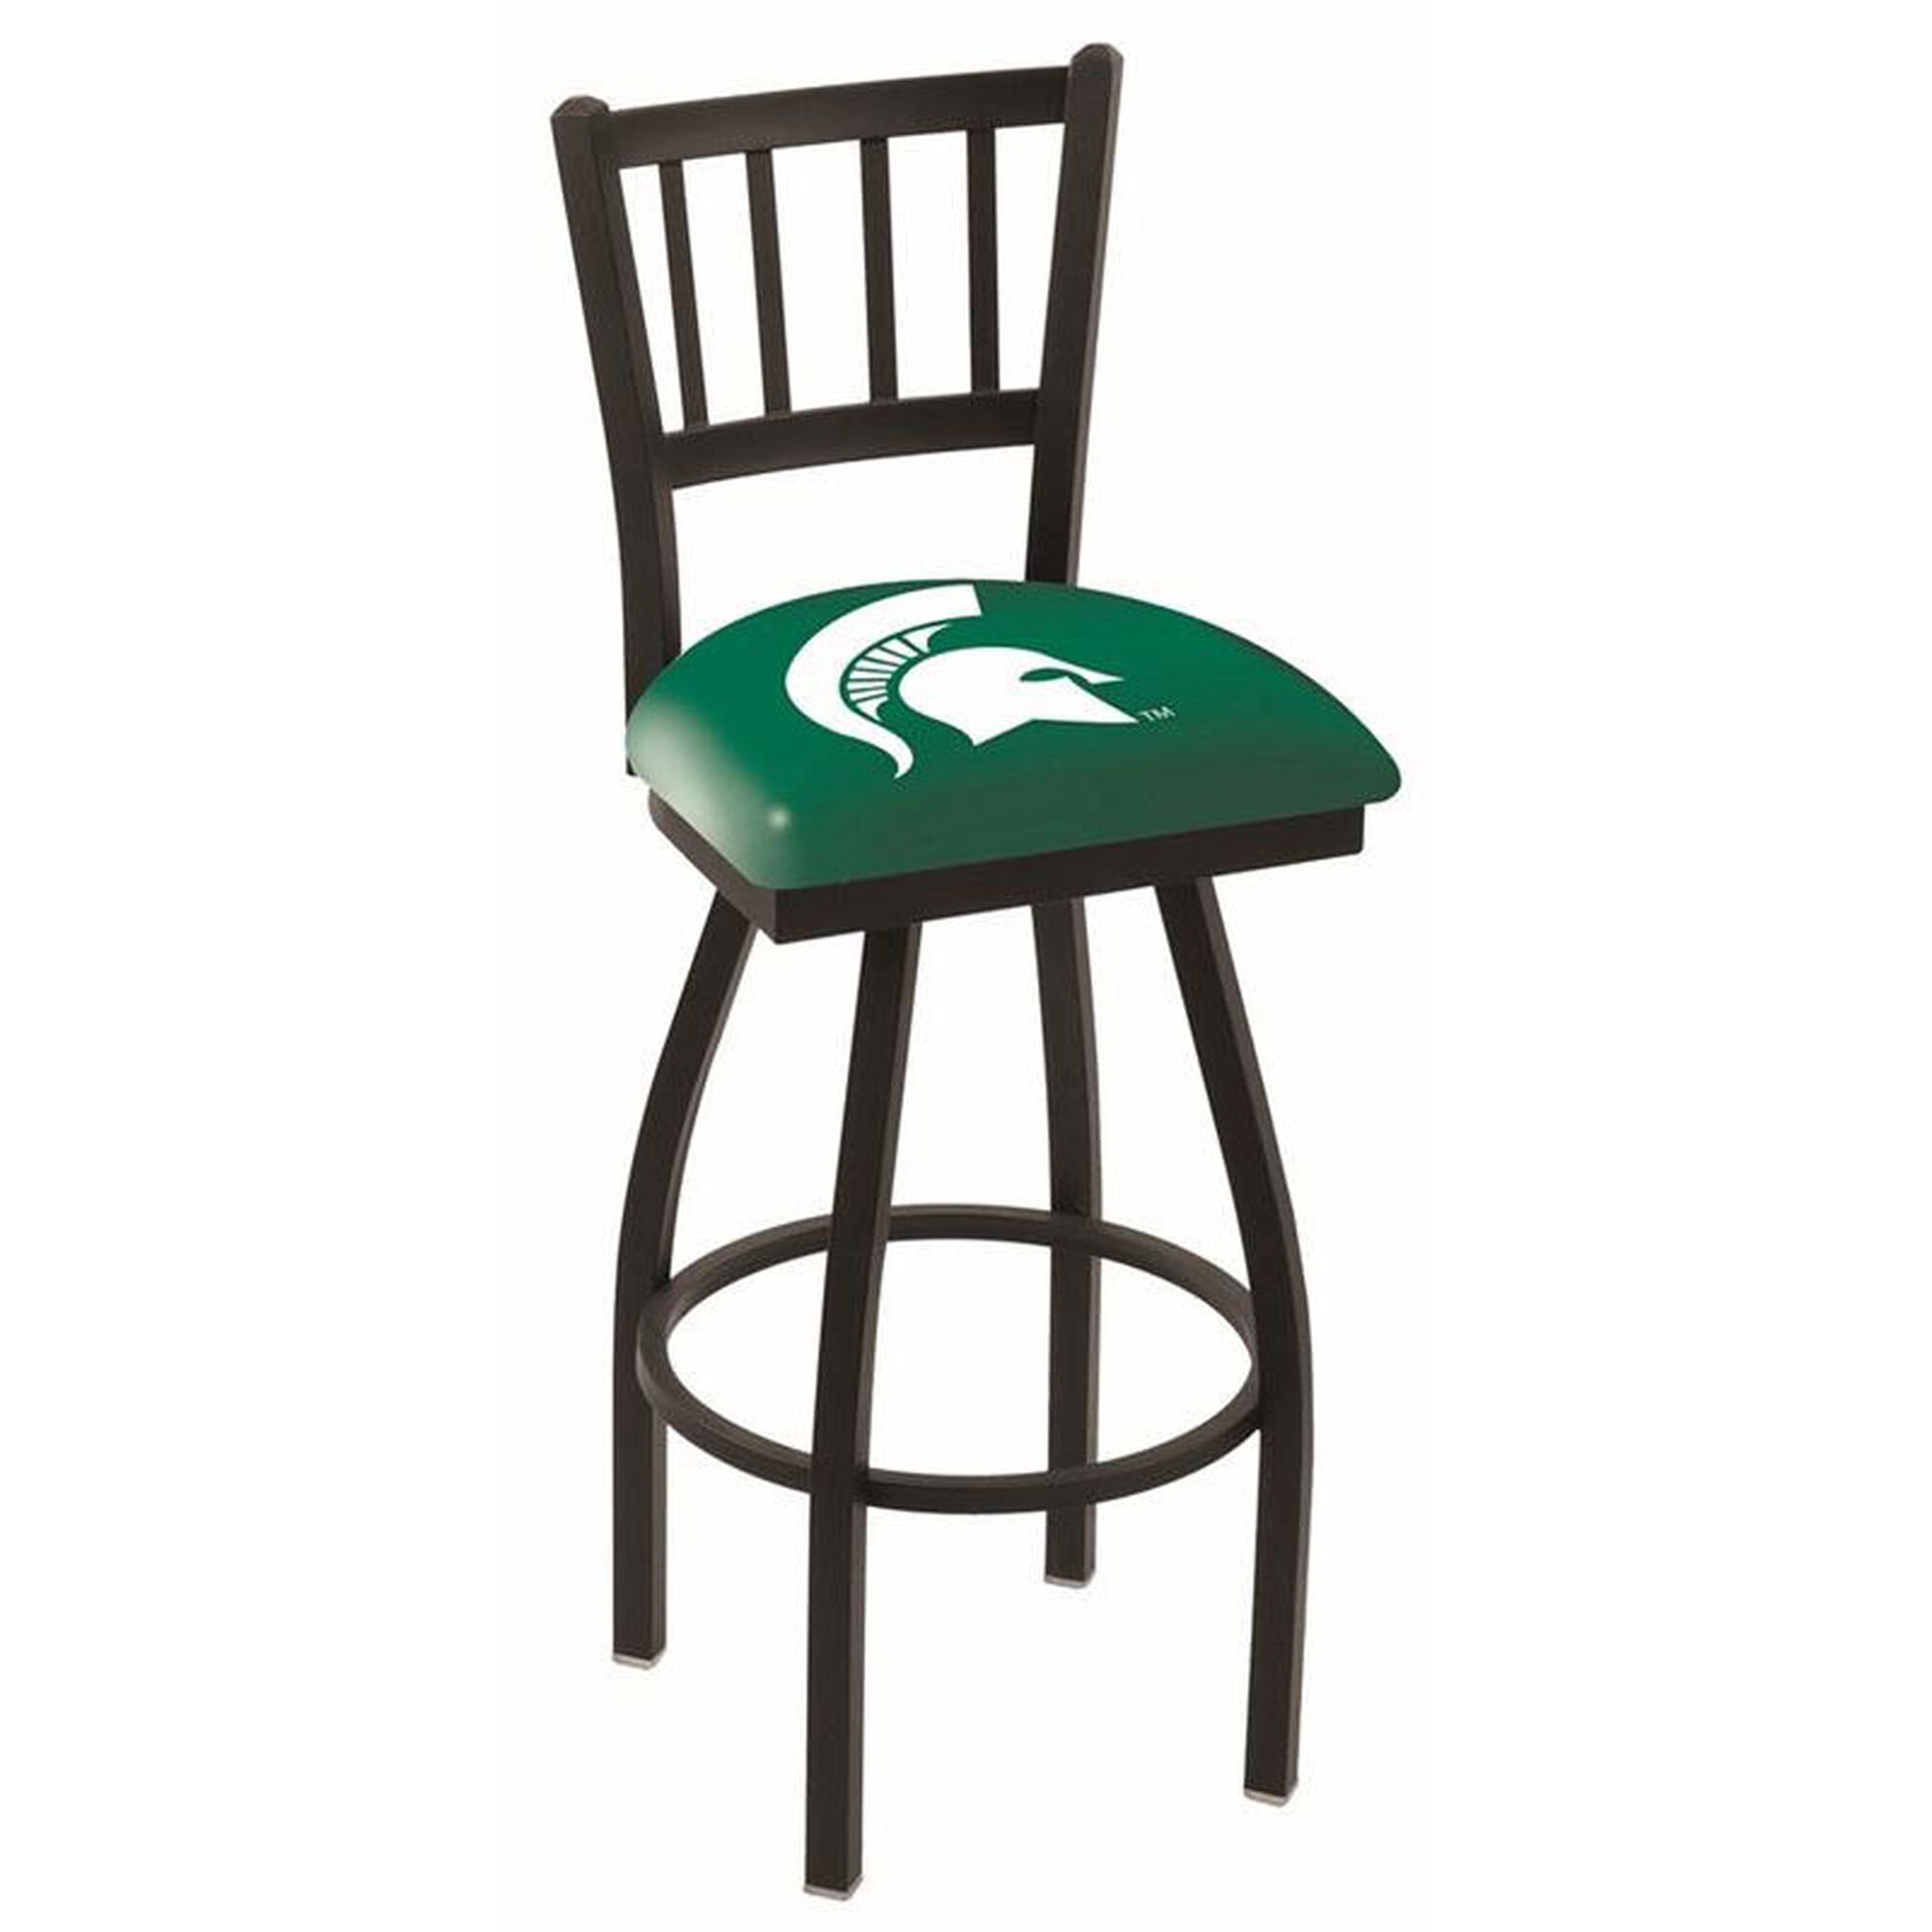 The Holland Bar Stool Co Michigan State University 25  : THEHOLLANDBARSTOOLCOL01825MICHST HOBMAINIMAGE from www.bizchair.com size 2000 x 2000 jpeg 132kB